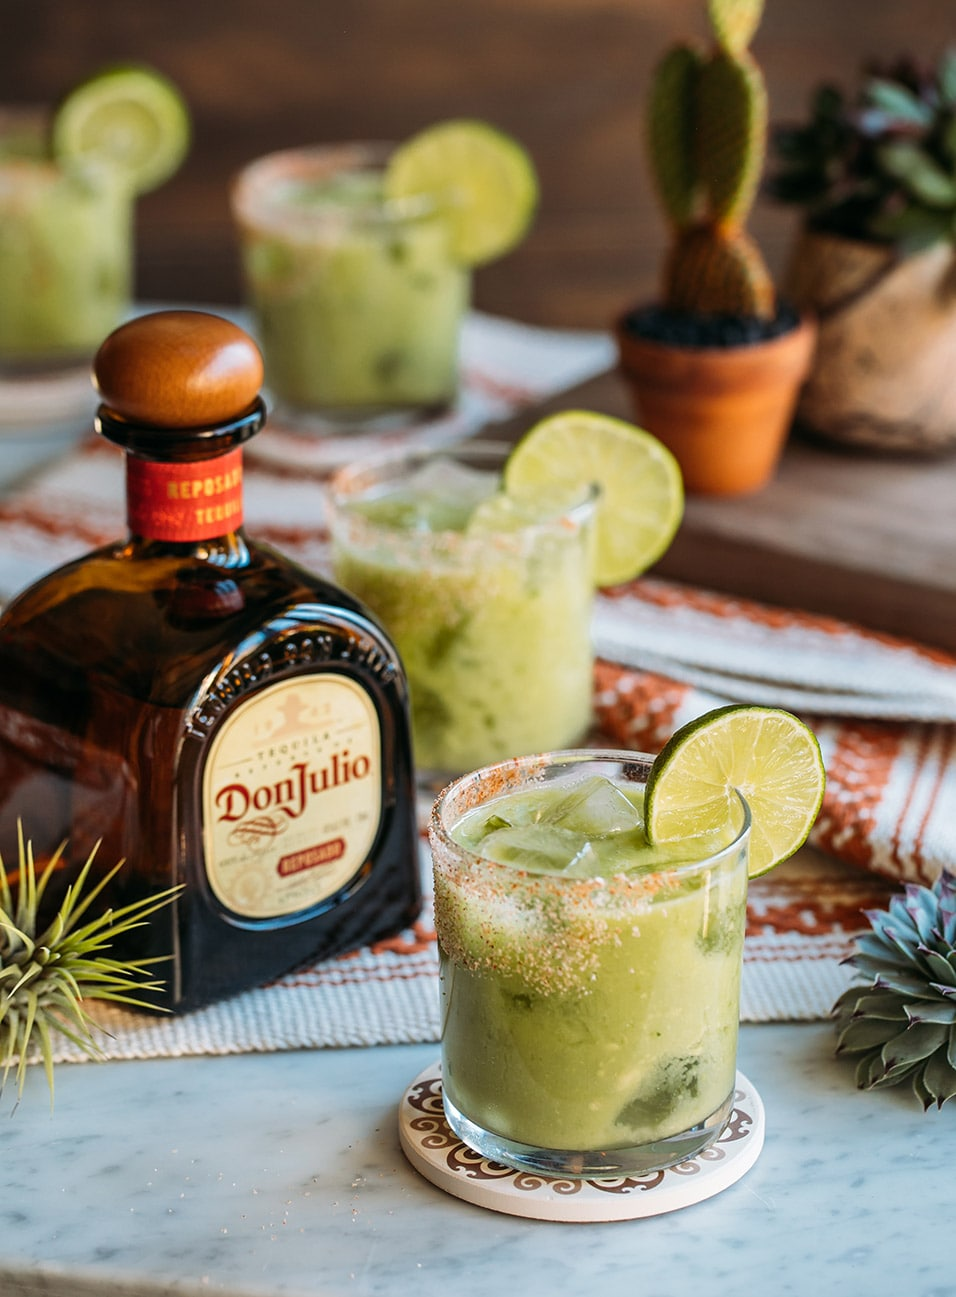 Avoketo Margarita made with Don Julio Reposado Tequila